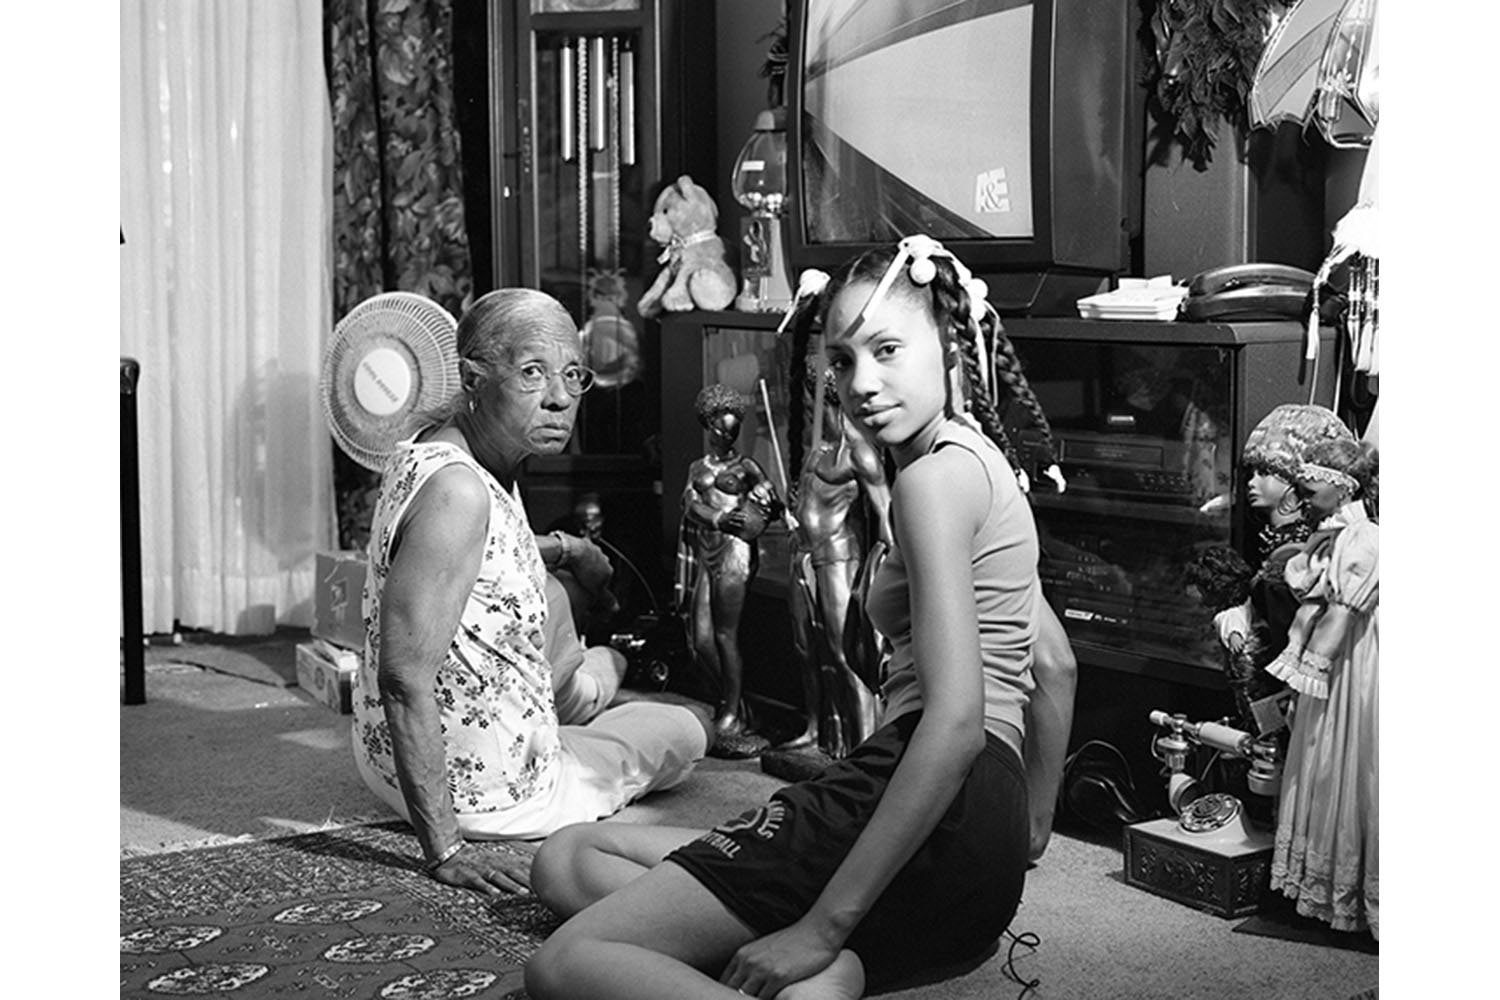 From LaToya Ruby Frazier's The Notion of a Family published by Aperture